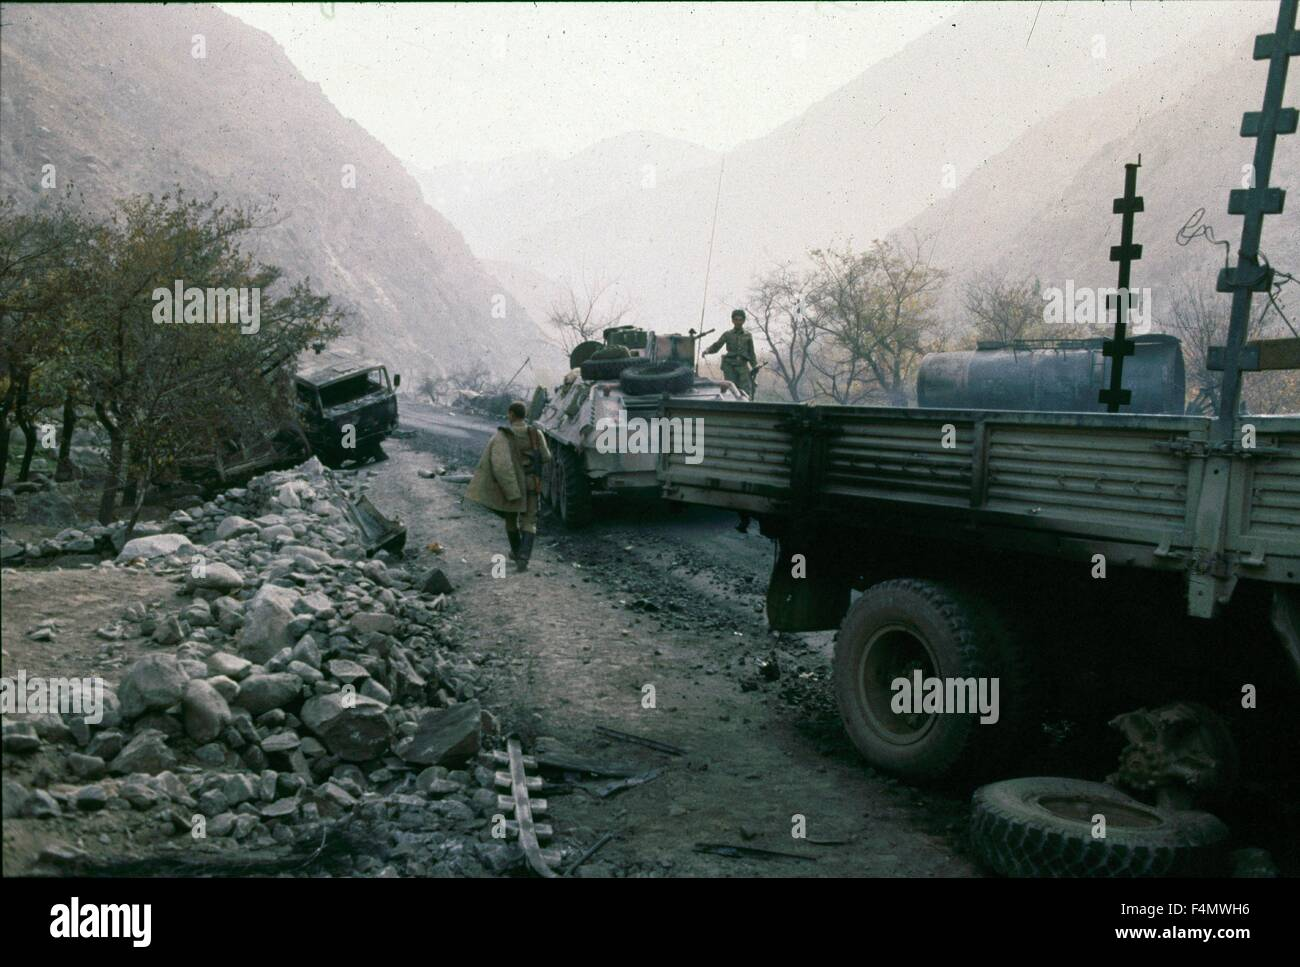 Soviet Afghanistan war - Page 6 Afghanistan-crossing-the-salang-tunnel-F4MWH6